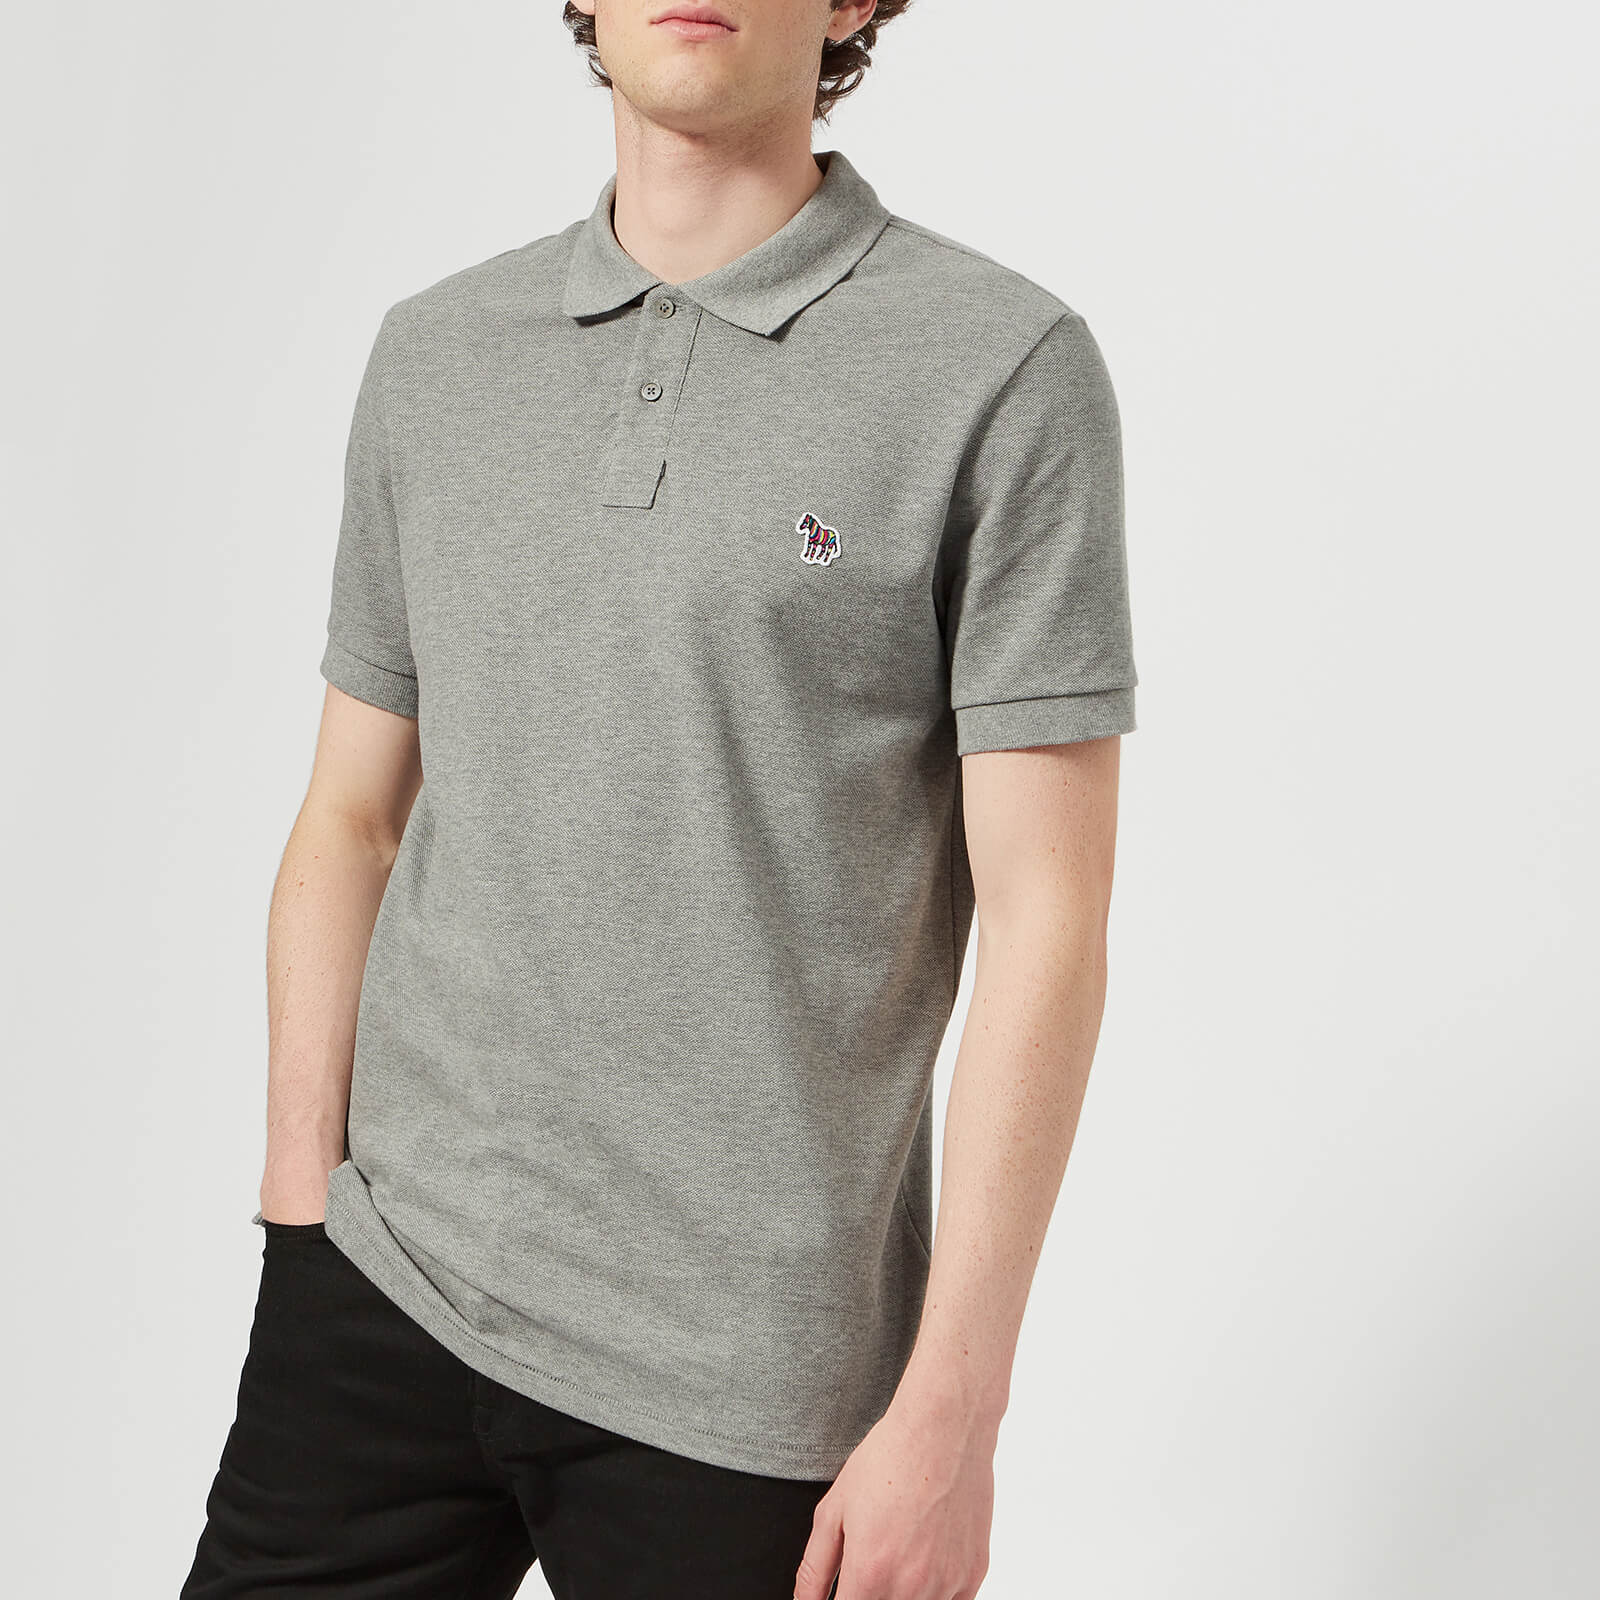 0bba6a697628ec PS by Paul Smith Men's Short Sleeve Zebra Polo Shirt - Grey - Free UK  Delivery over £50